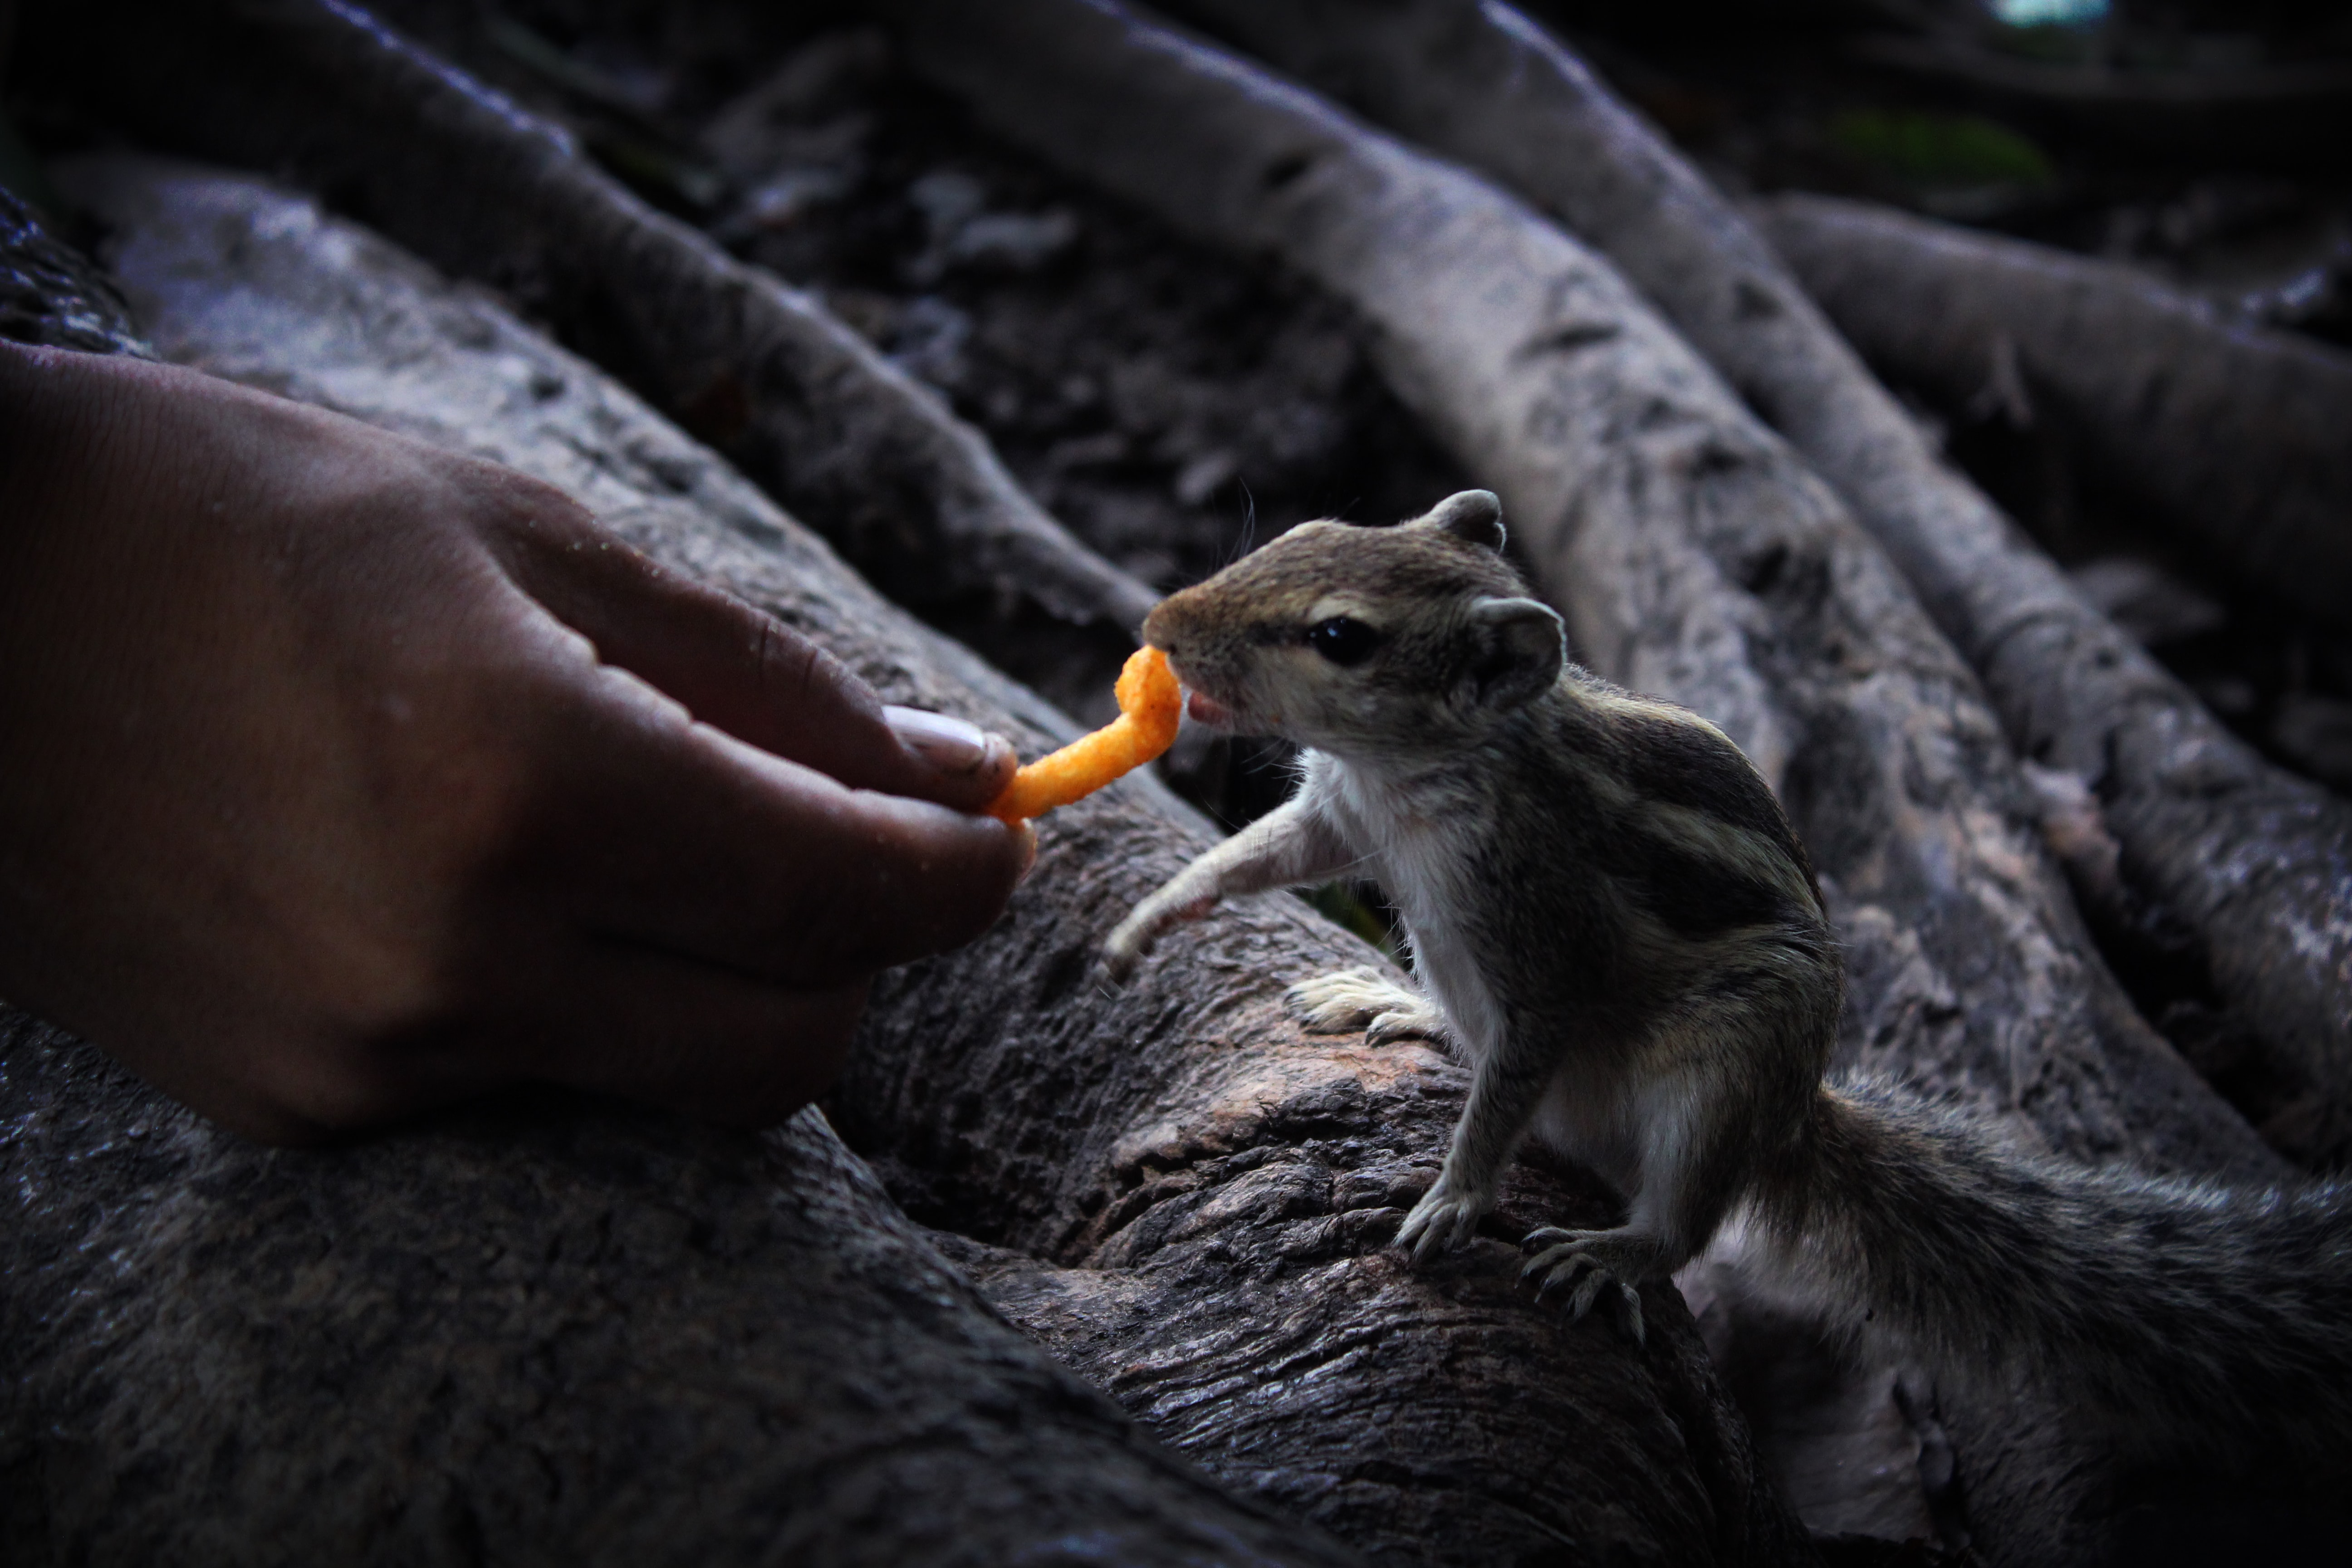 selective color photography of person feeding squirrel